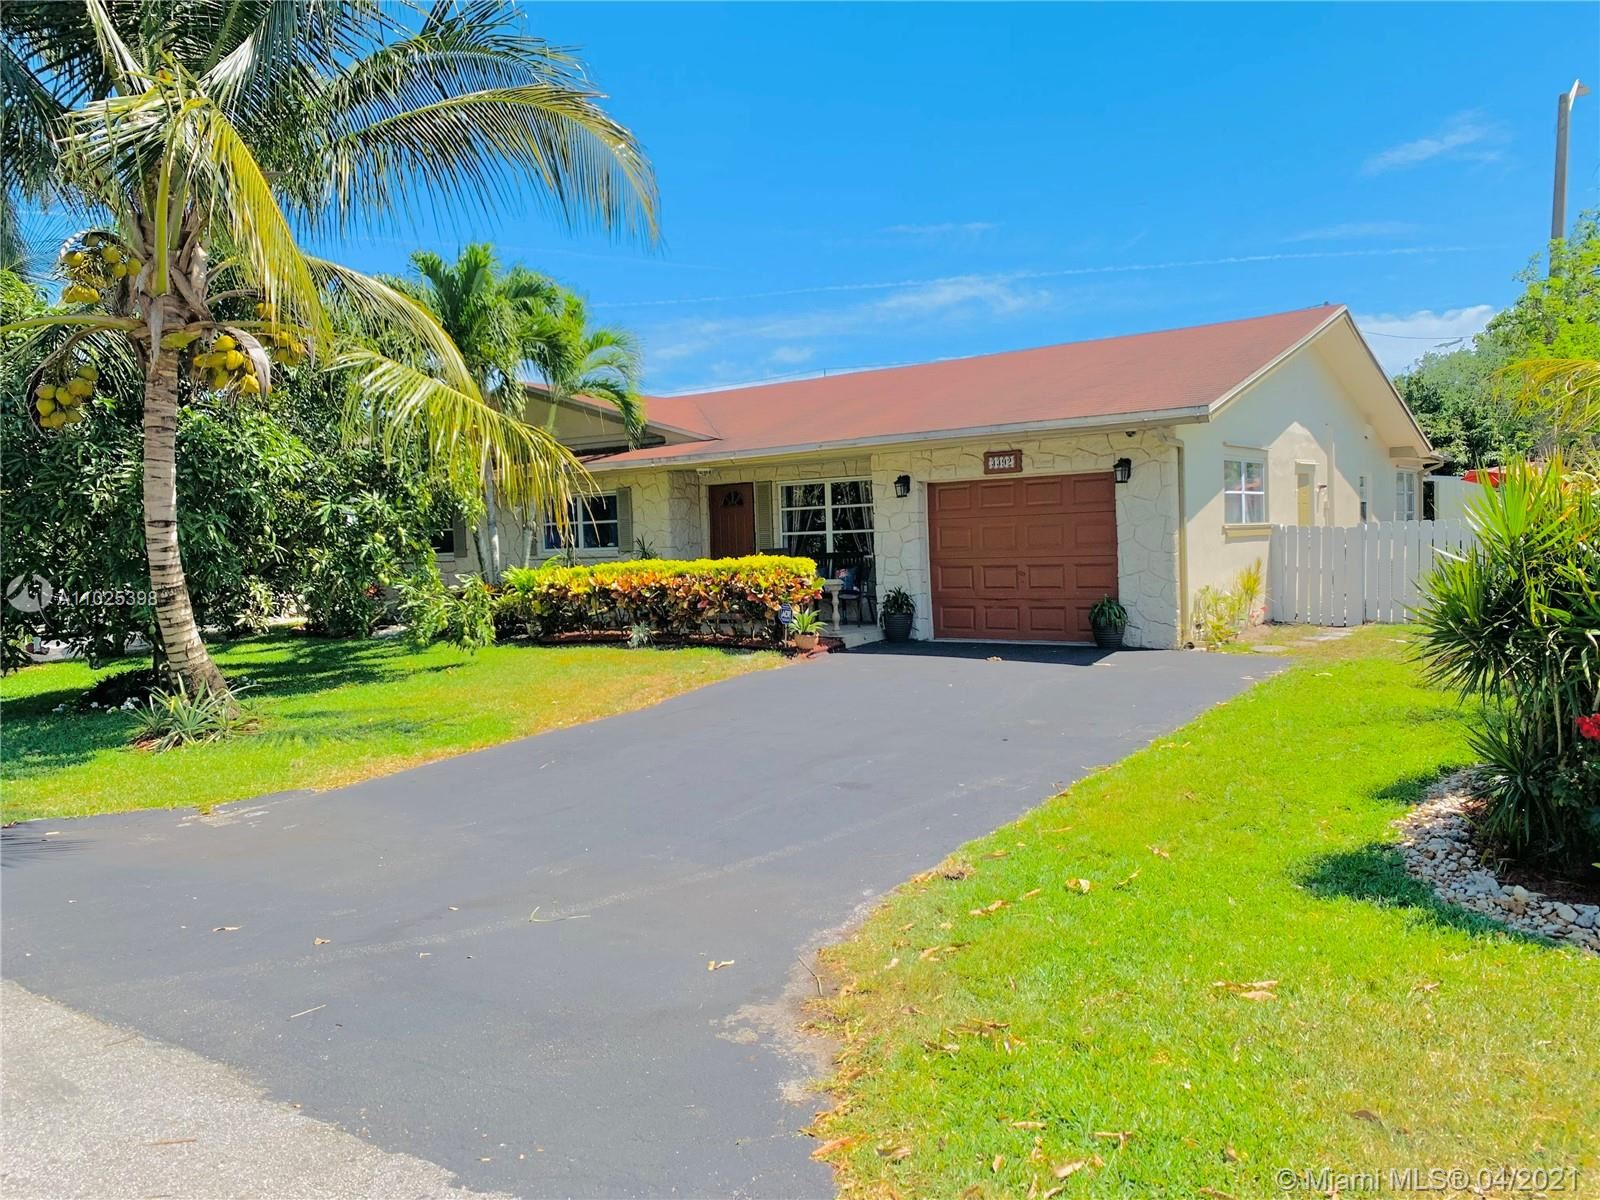 3392 NW 63rd St, Fort Lauderdale, FL 33309 - #: A11025398